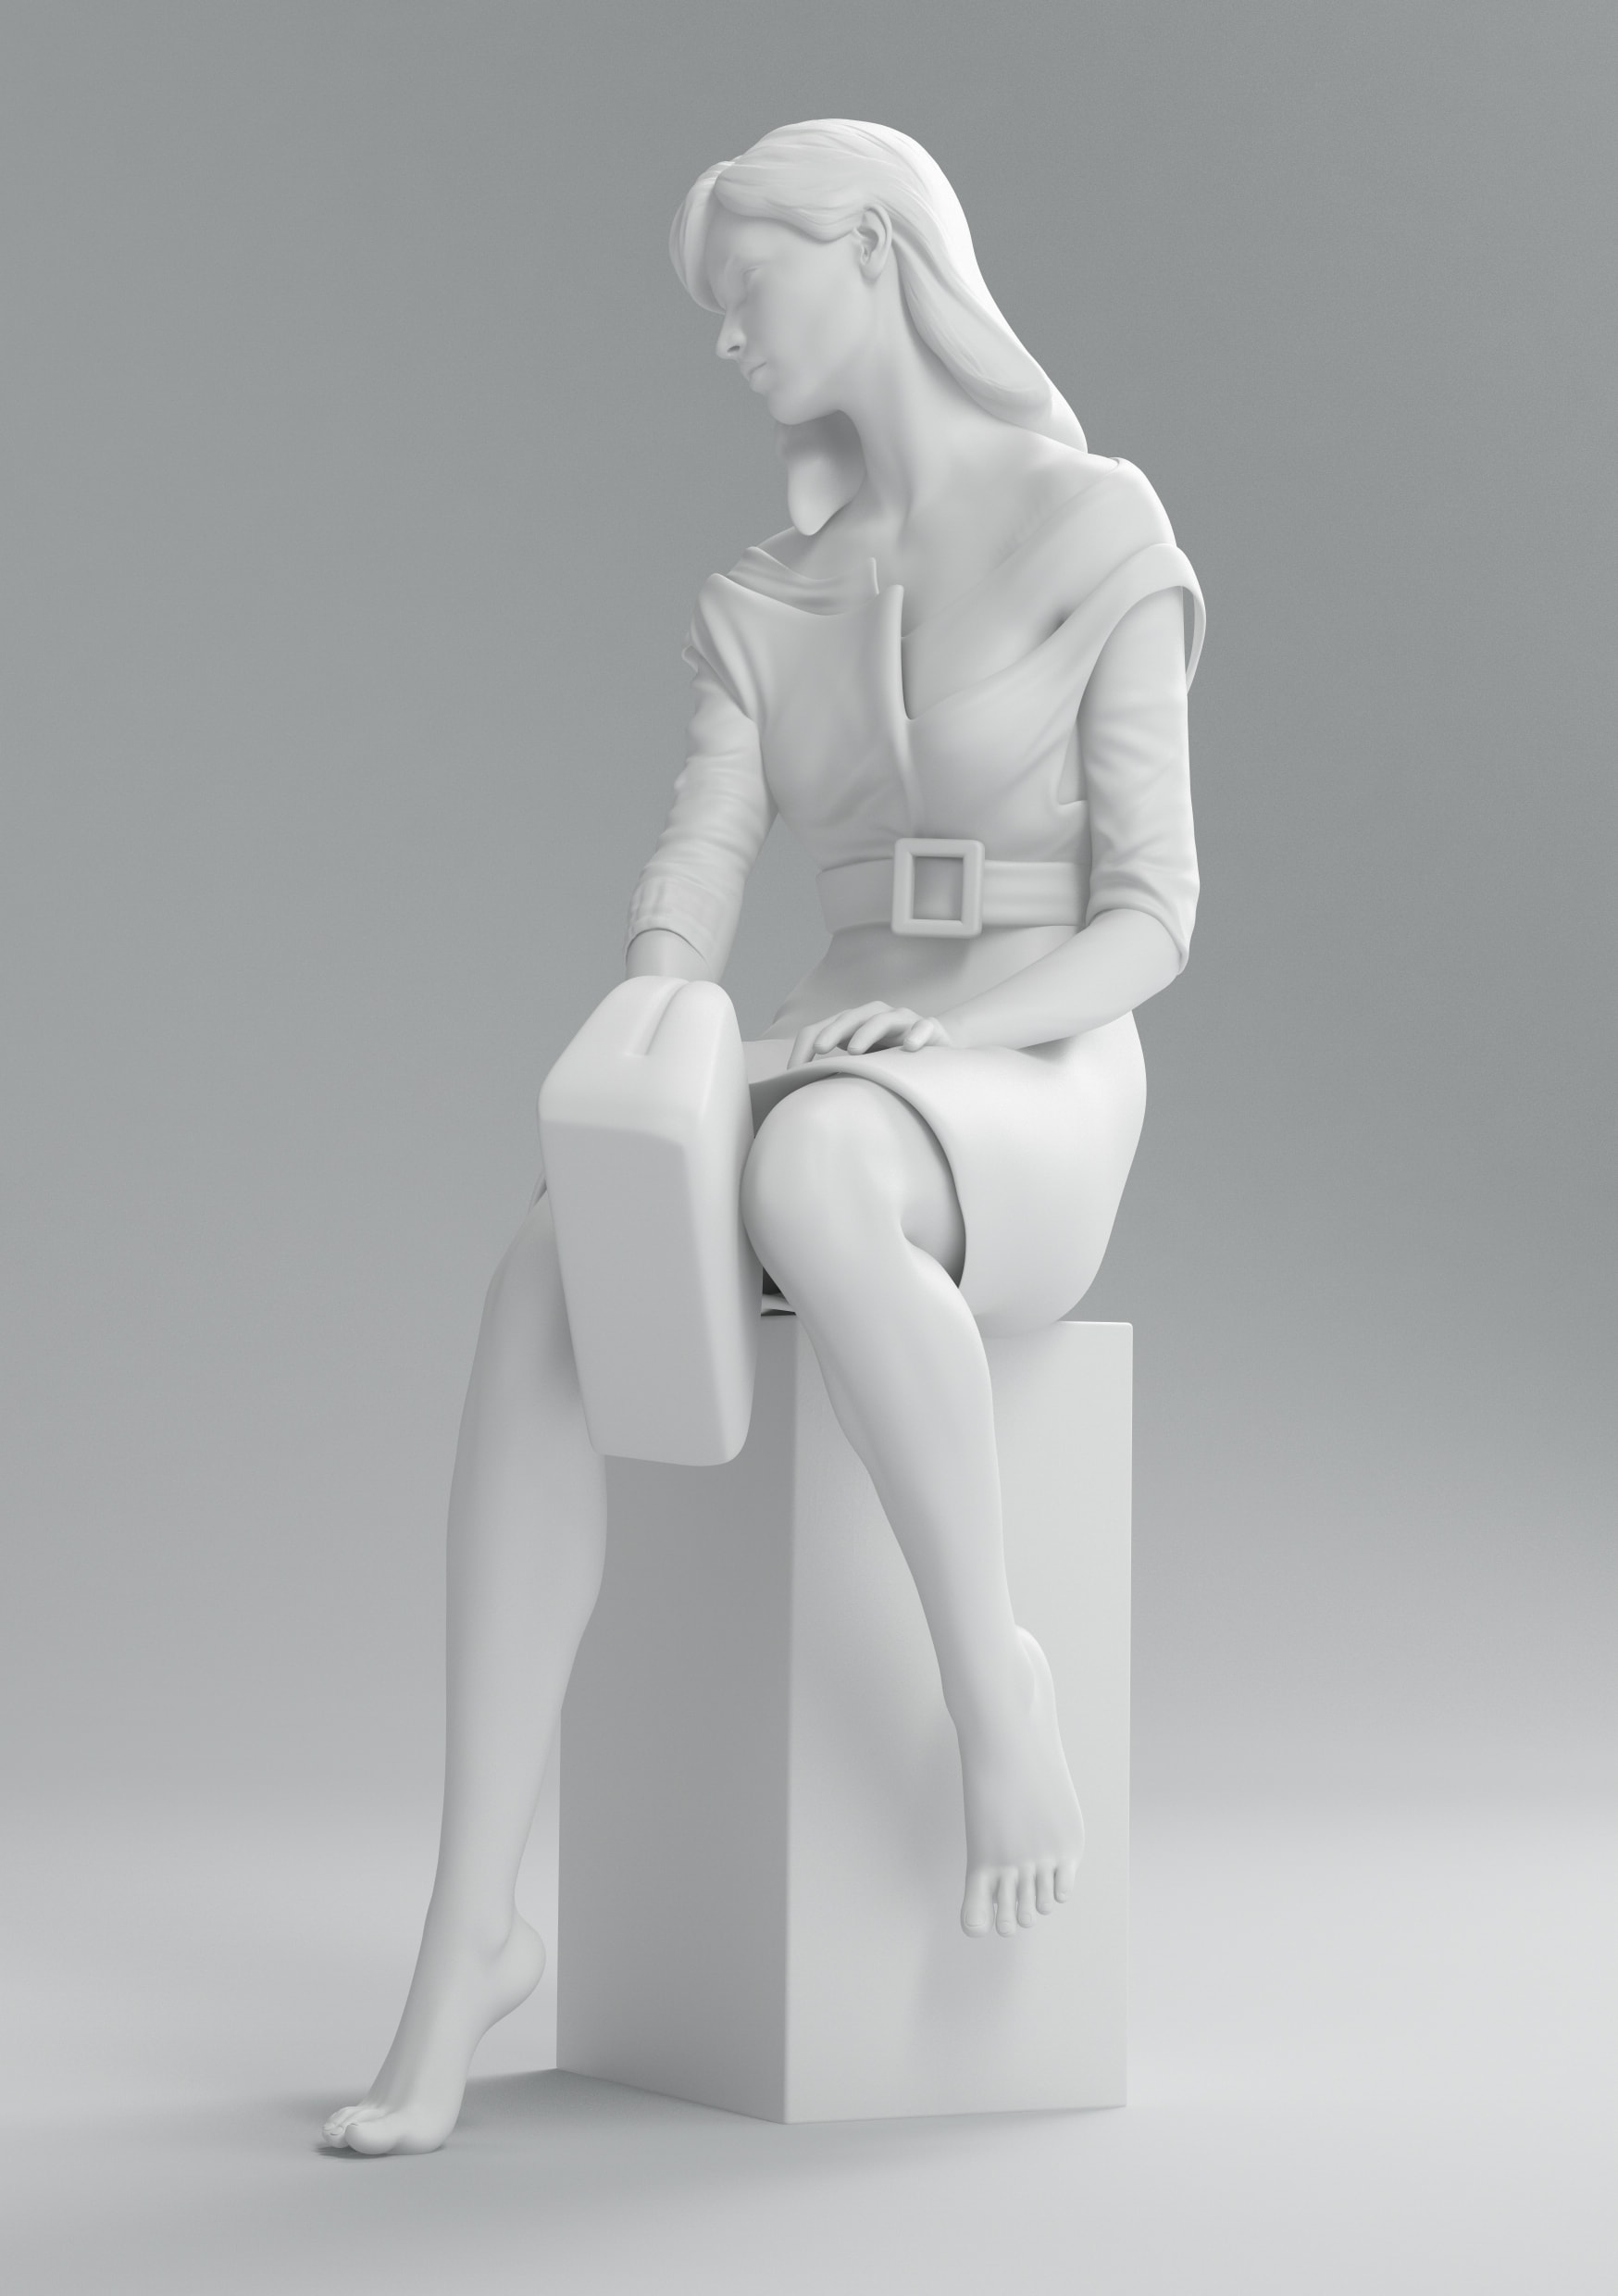 Prada monochrome fashion render statue collection cgi still